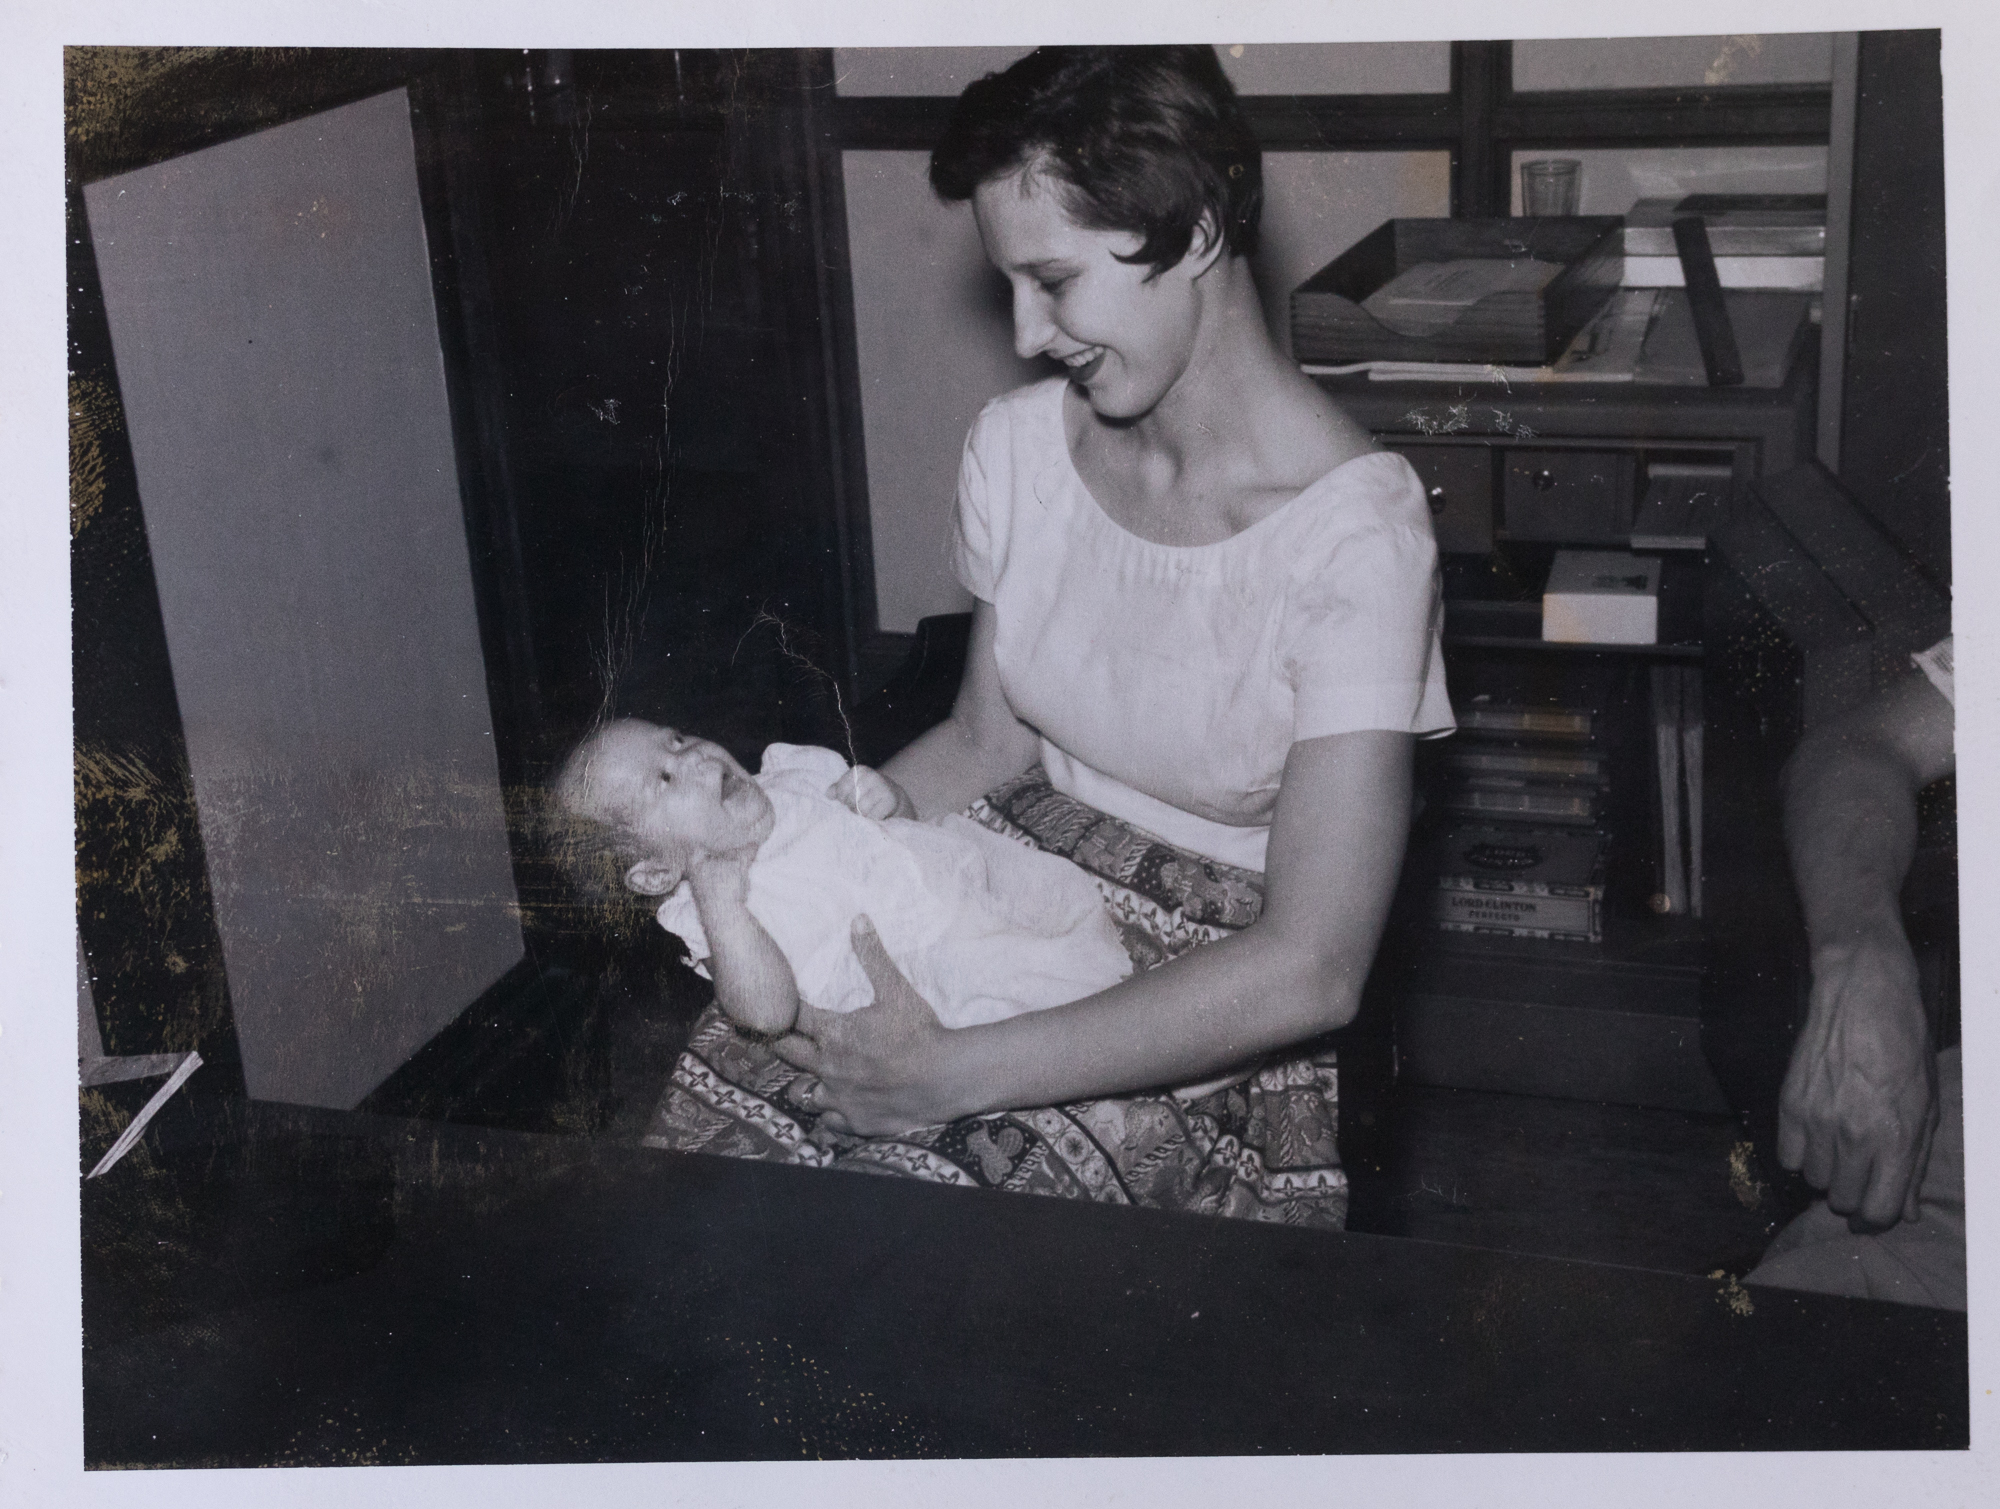 My mother, Miriam Gentry, with me in 1958.